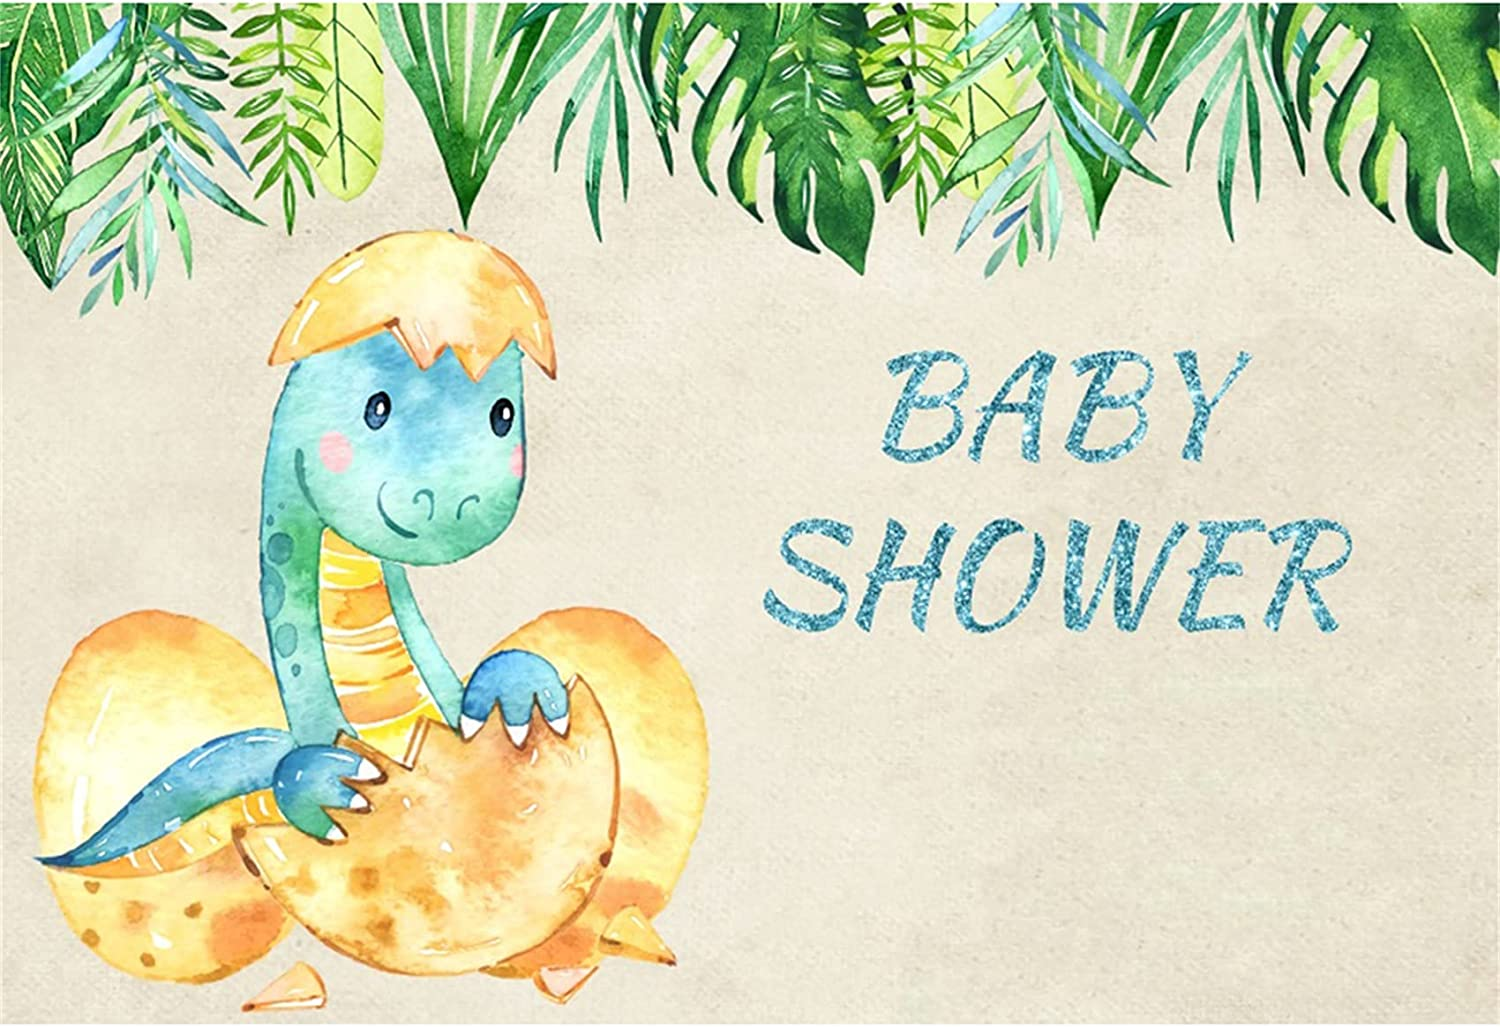 Haoyiyi 5x3ft Baby Shower Backdrop Dinosaur Cartoon Summe Max Manufacturer direct delivery 89% OFF Animal